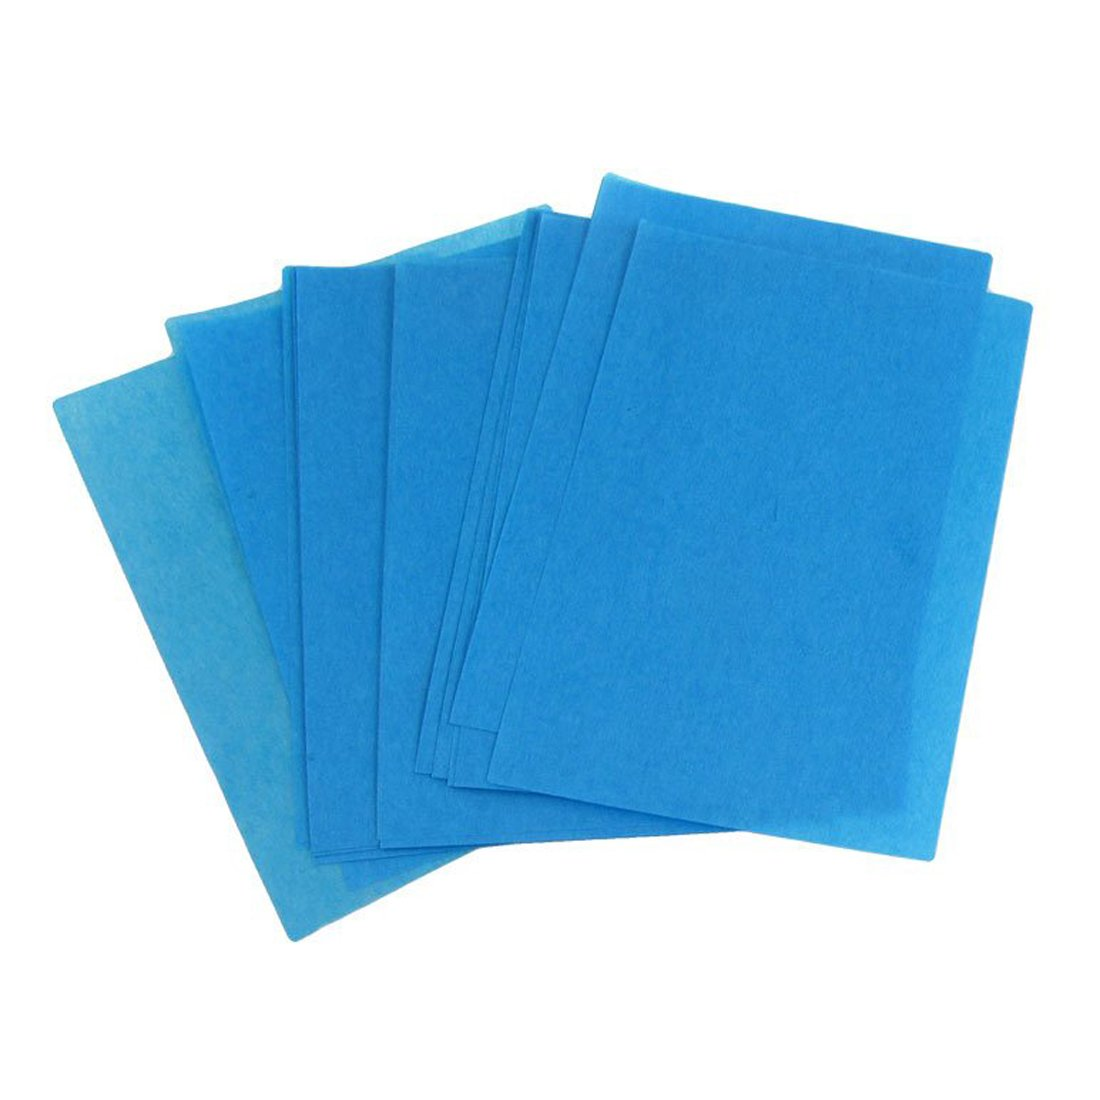 SODIAL(R) 80 Pcs Blotting Paper Oil Absorbing Sheets Blue 042853